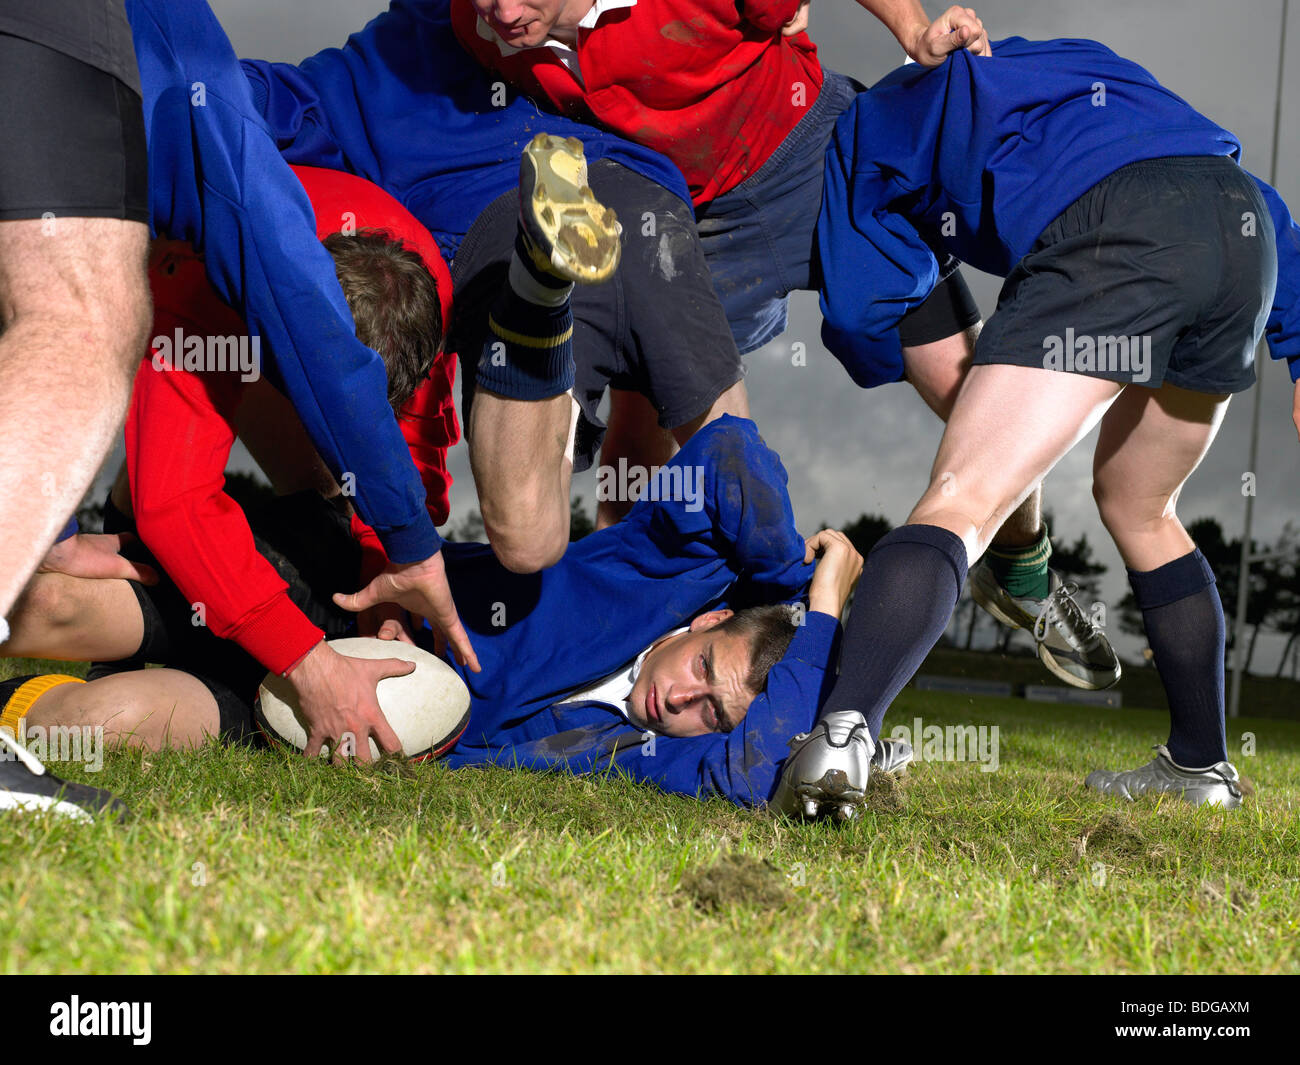 Playing rugby - Stock Image